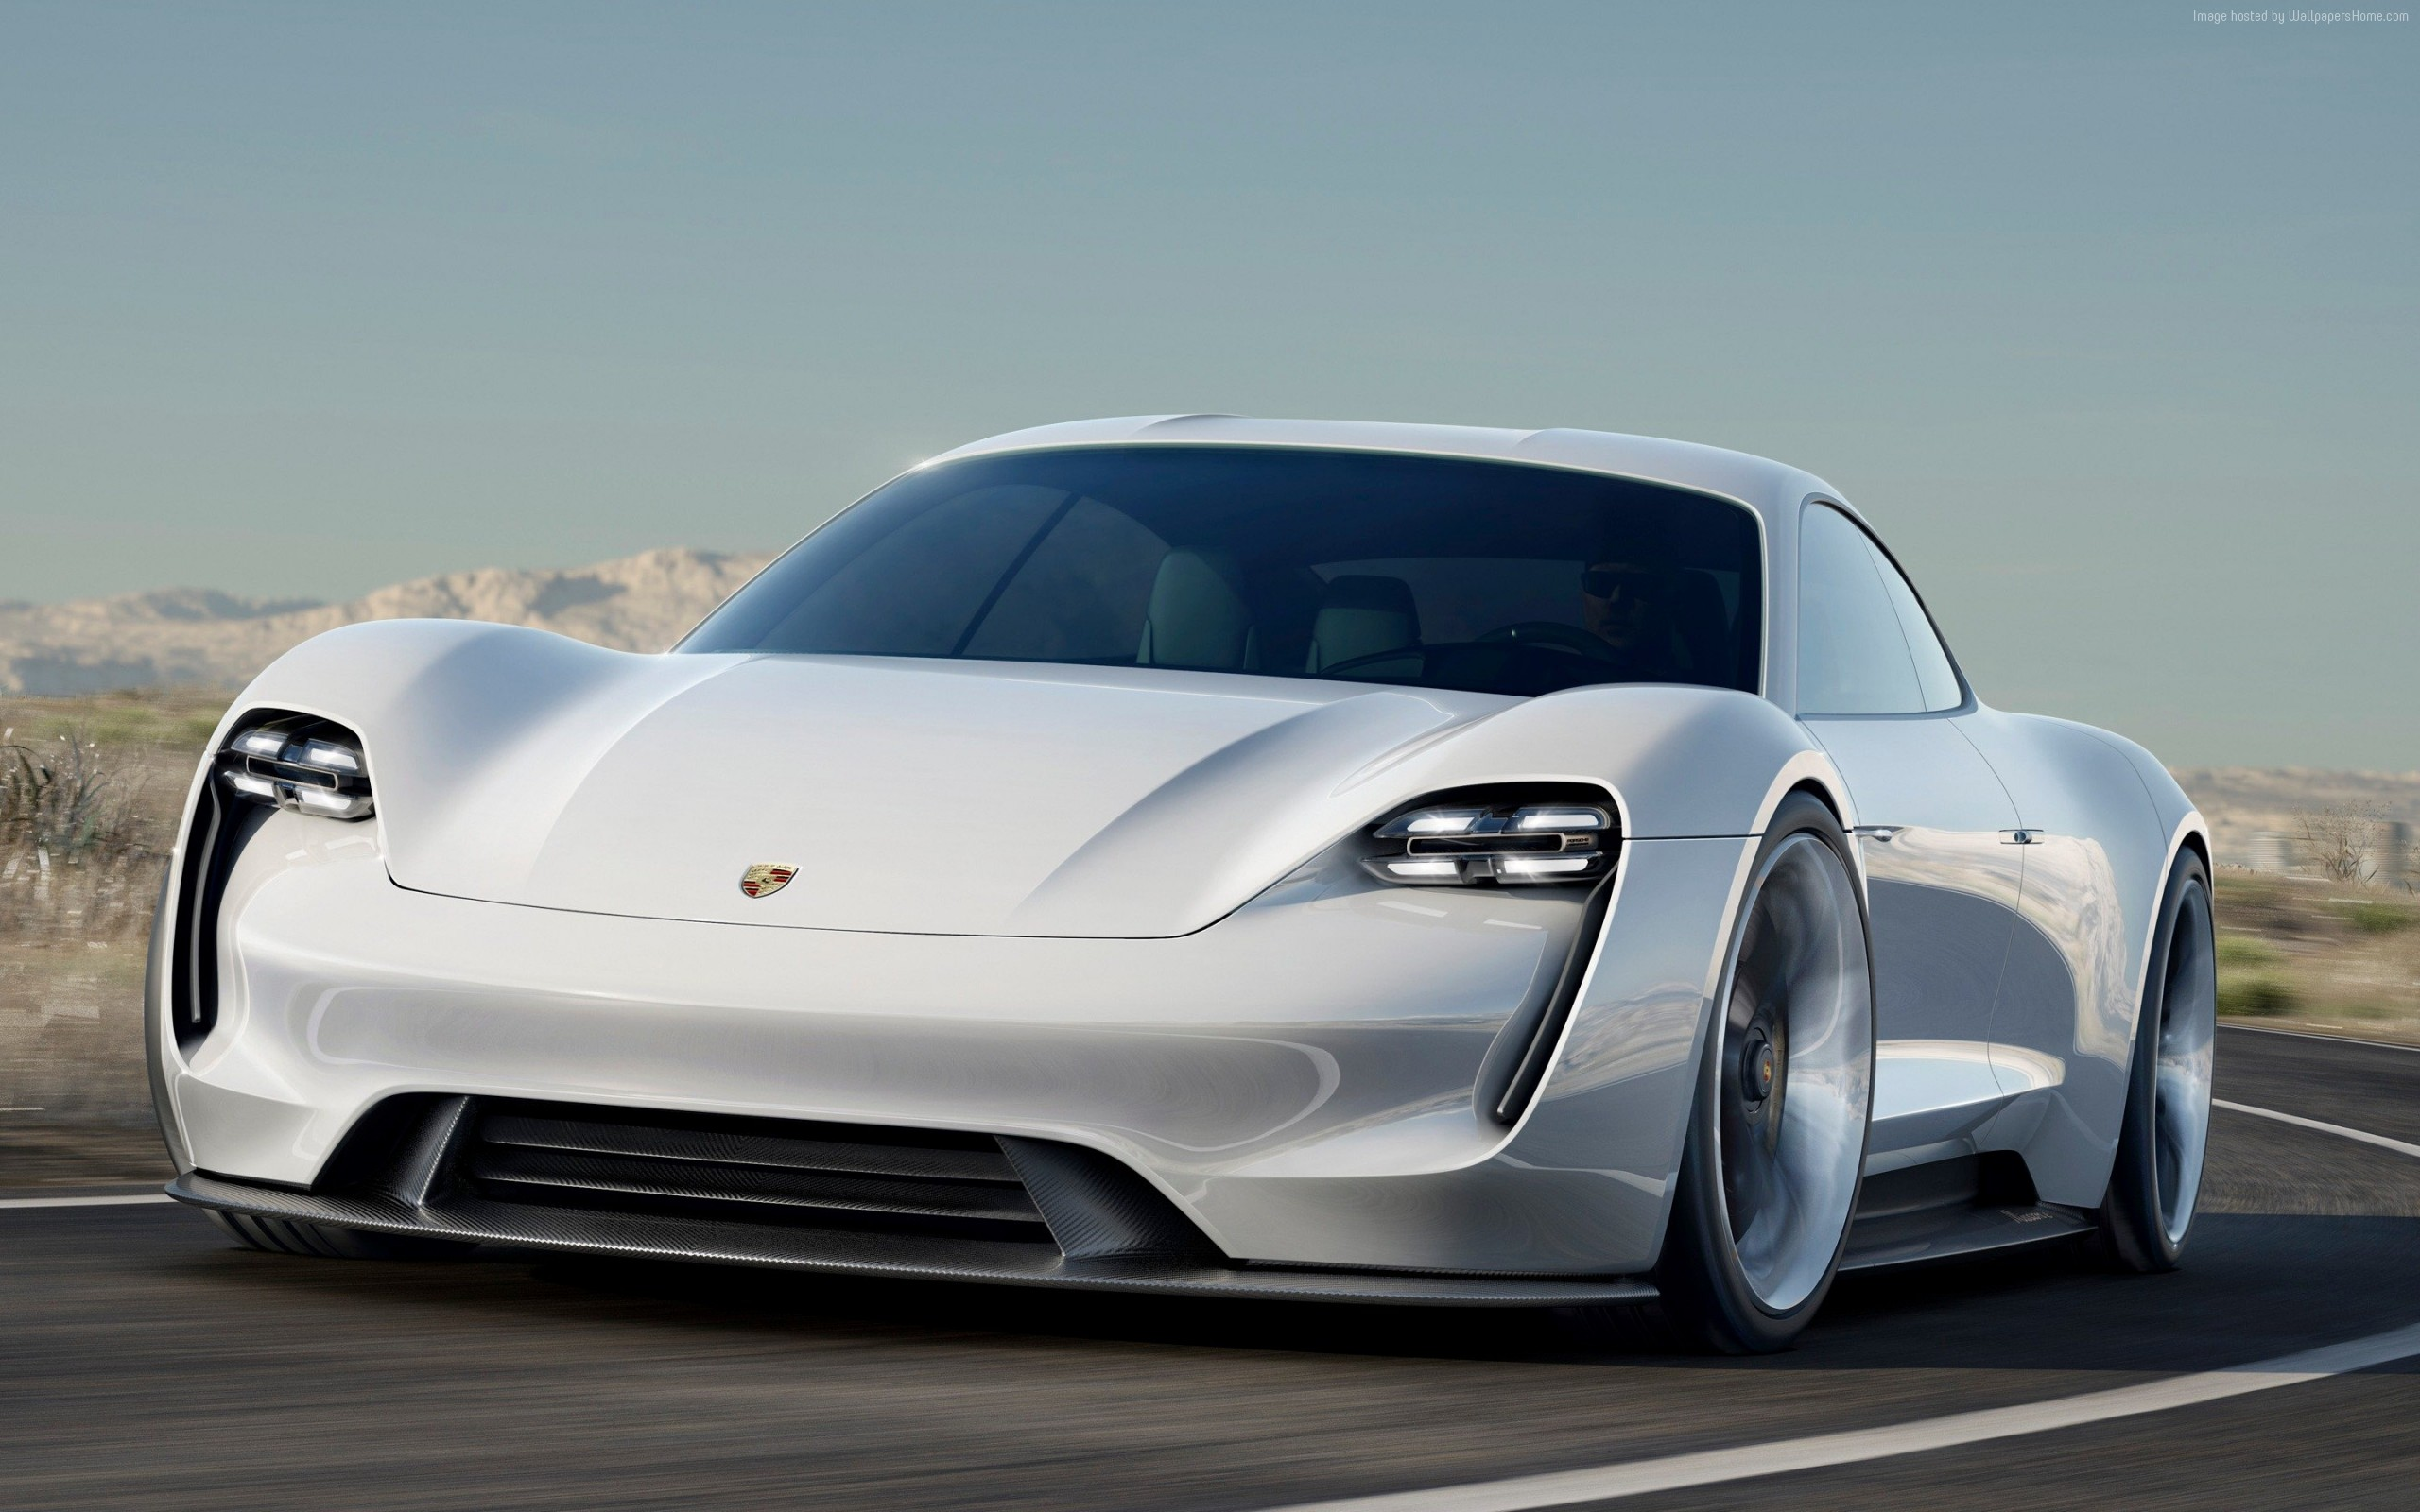 Wallpaper of Porsche Taycan Electric Cars SuperCar 800V 2560x1600